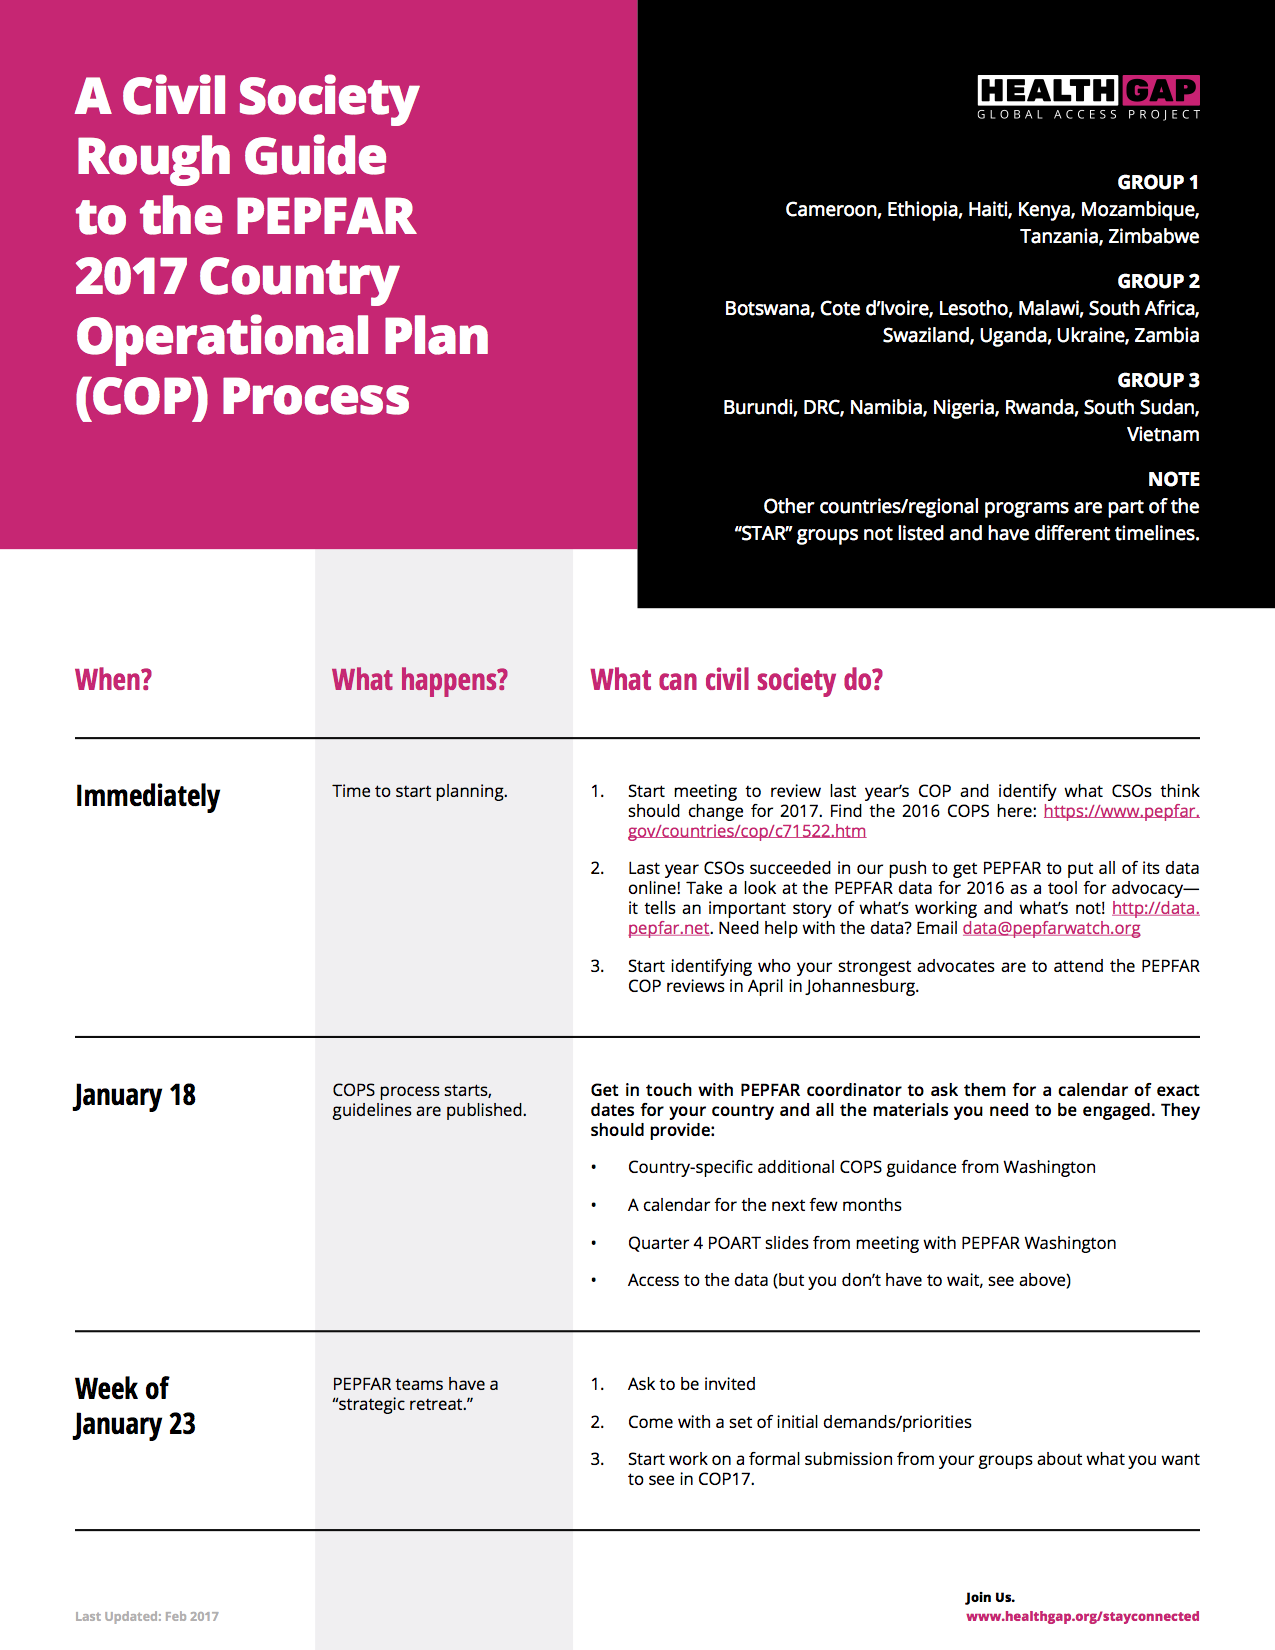 Civil_Society_Rough_Guide_to_PEPFAR_2017_COP_Process___Page_1.png